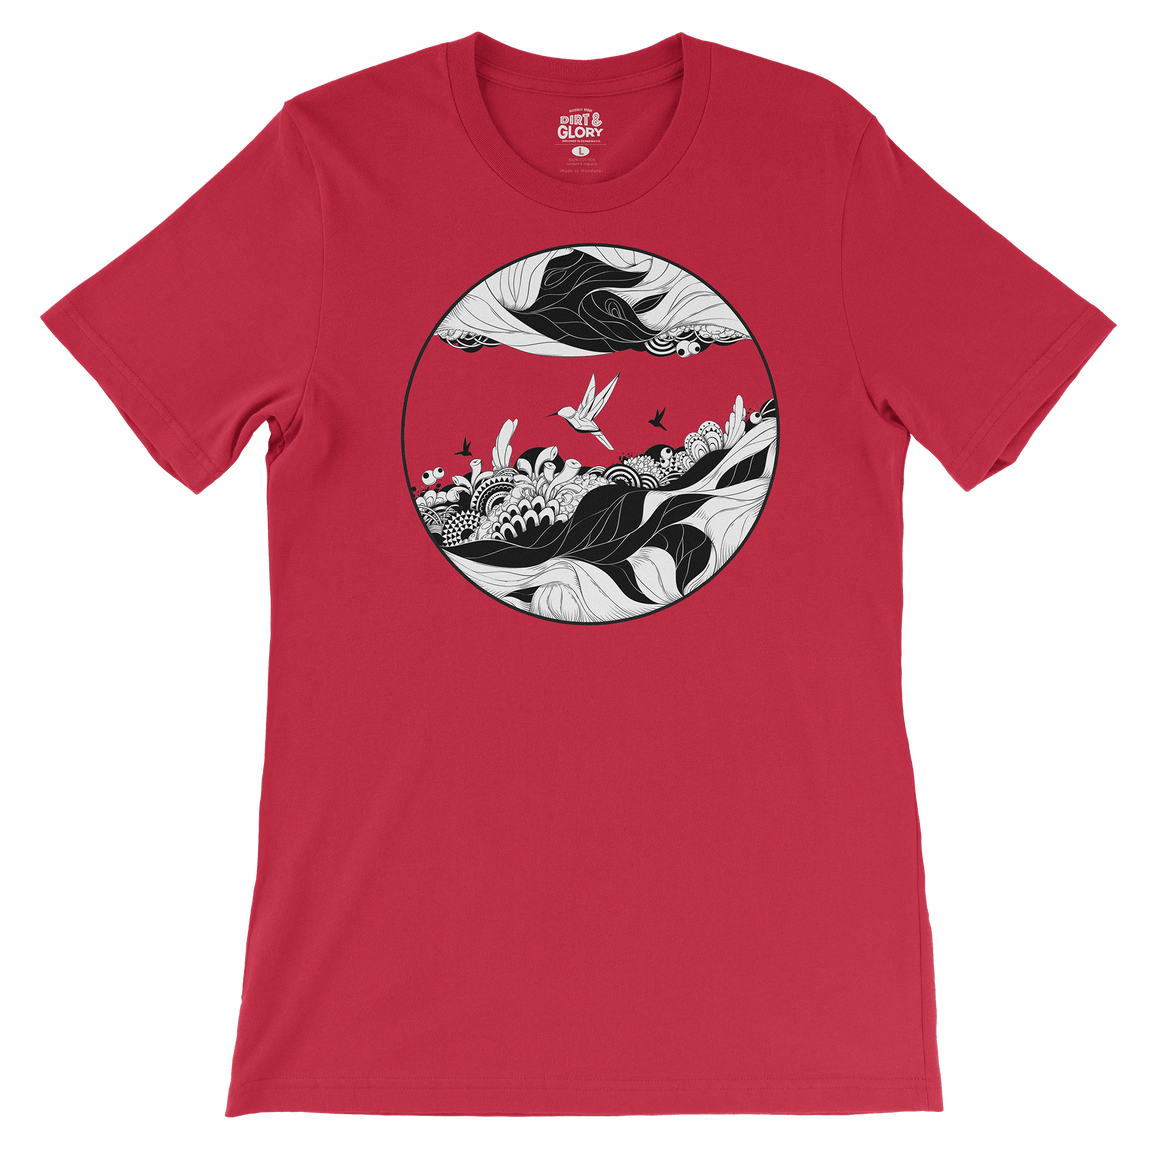 Red Fantasy - Women's Tee by DIRT & GLORY